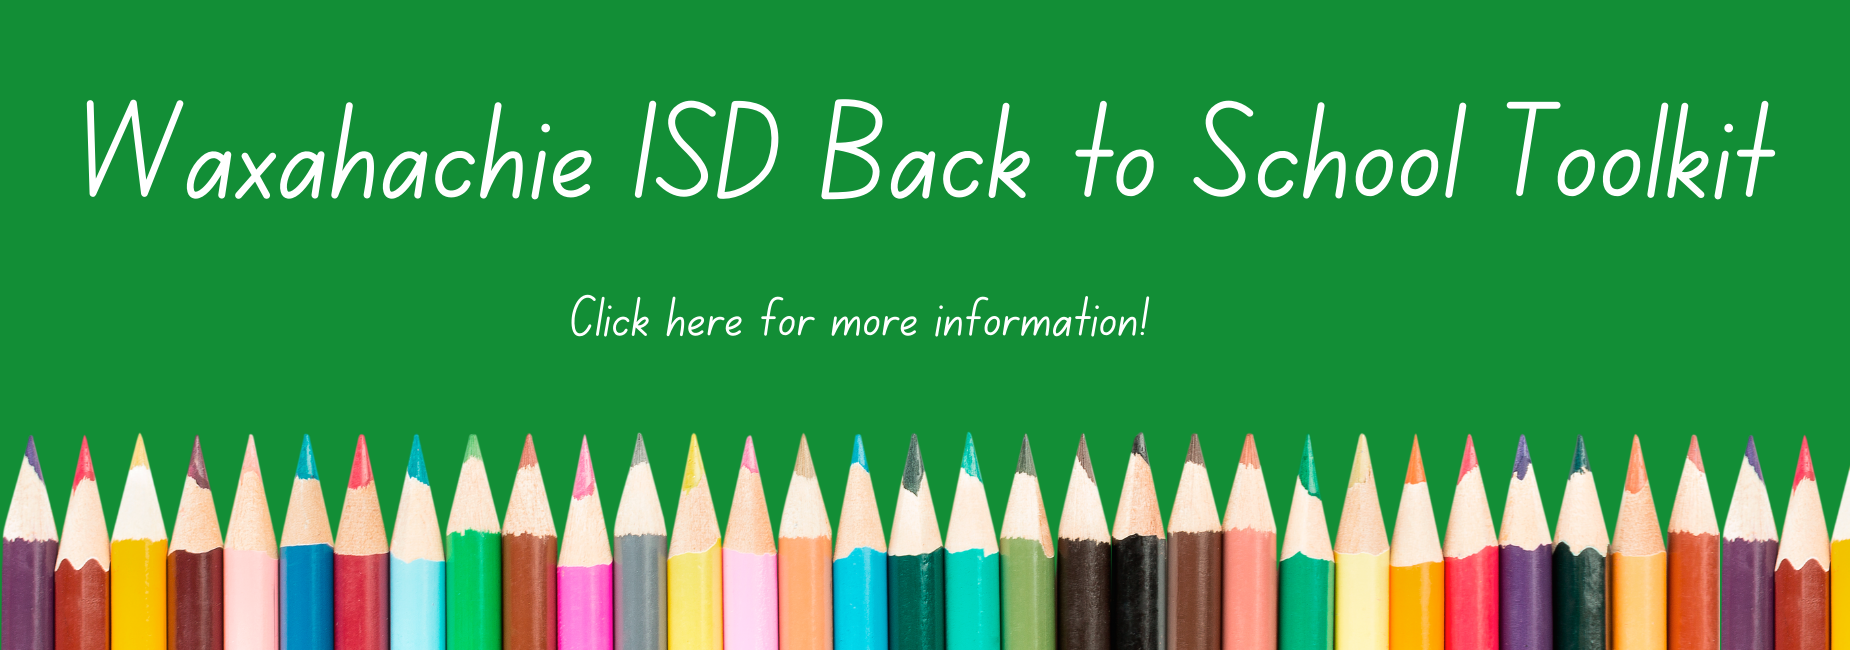 graphic with colored pencils reads back to school toolkit